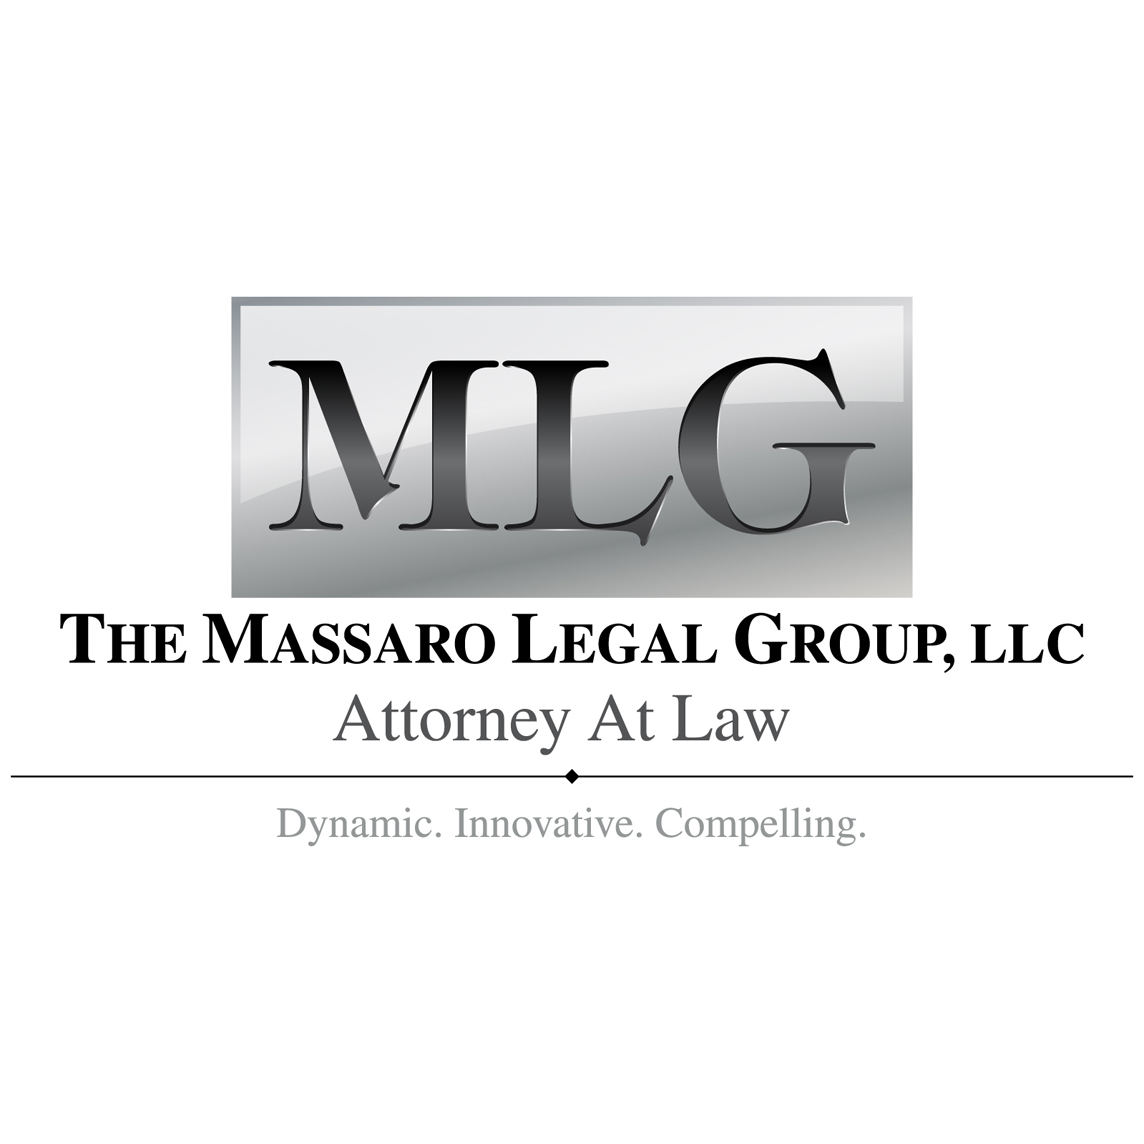 The Massaro Legal Group, LLC